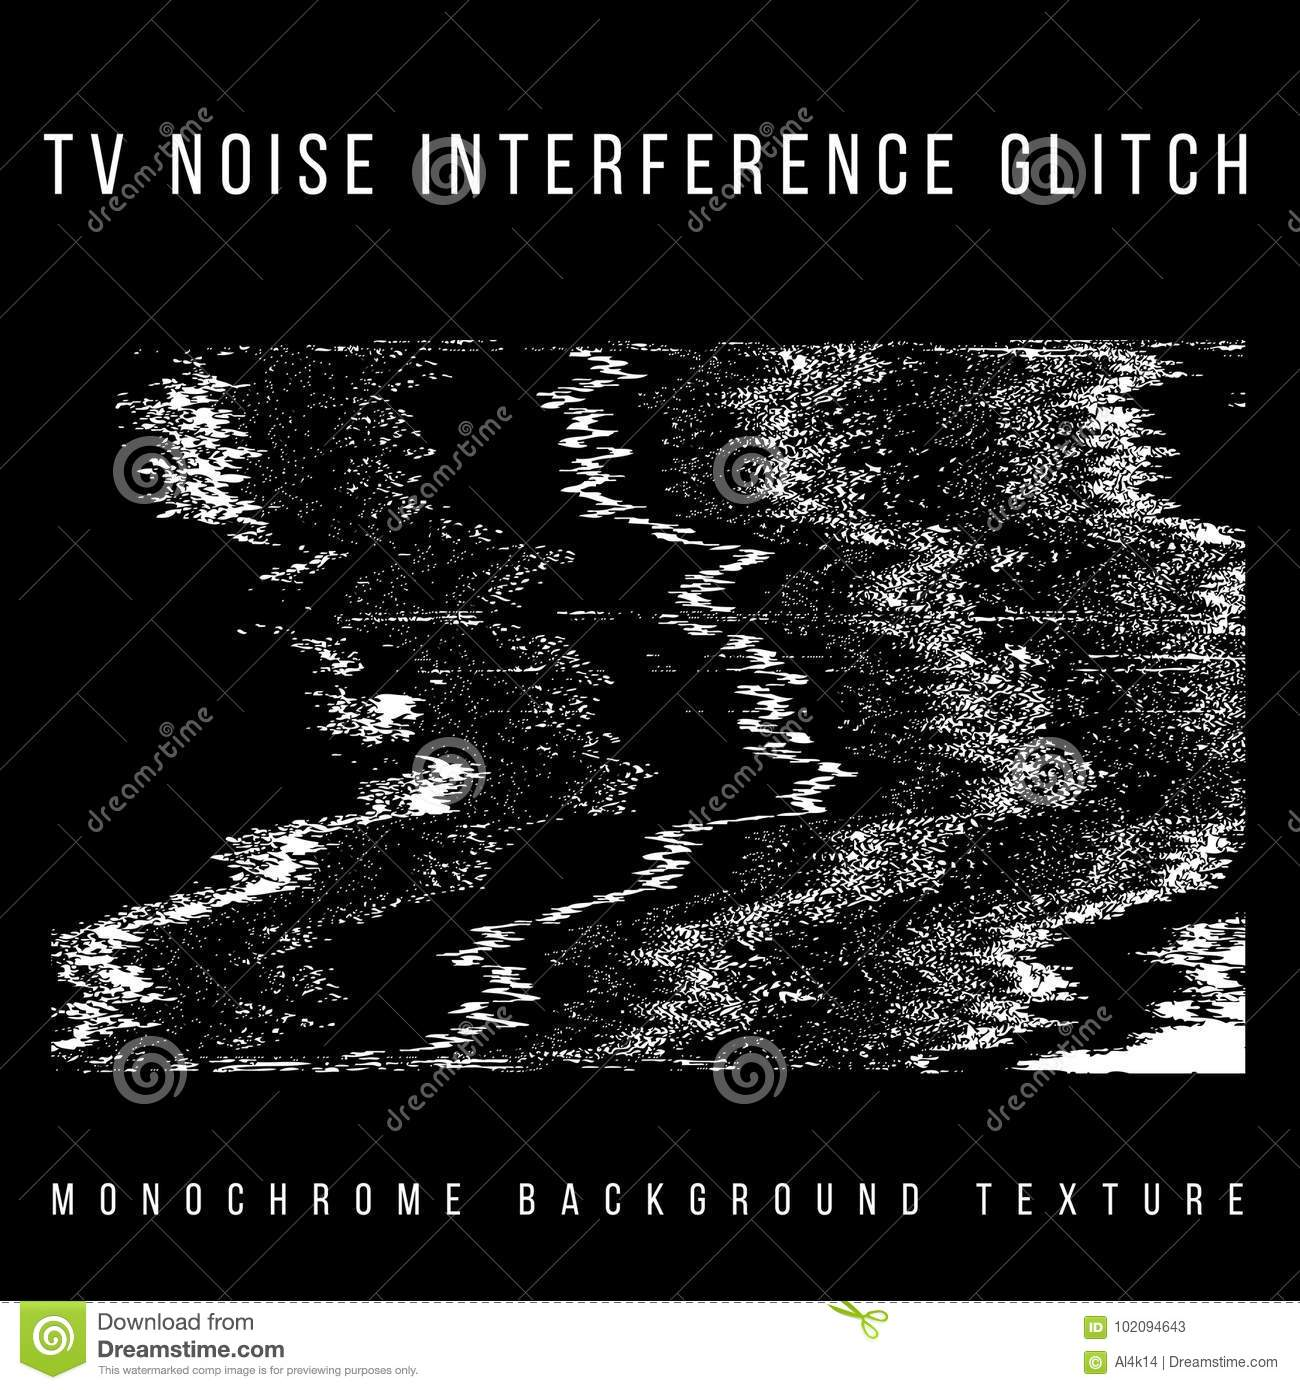 Vector Television Interference Glitch Stock Vector - Illustration of